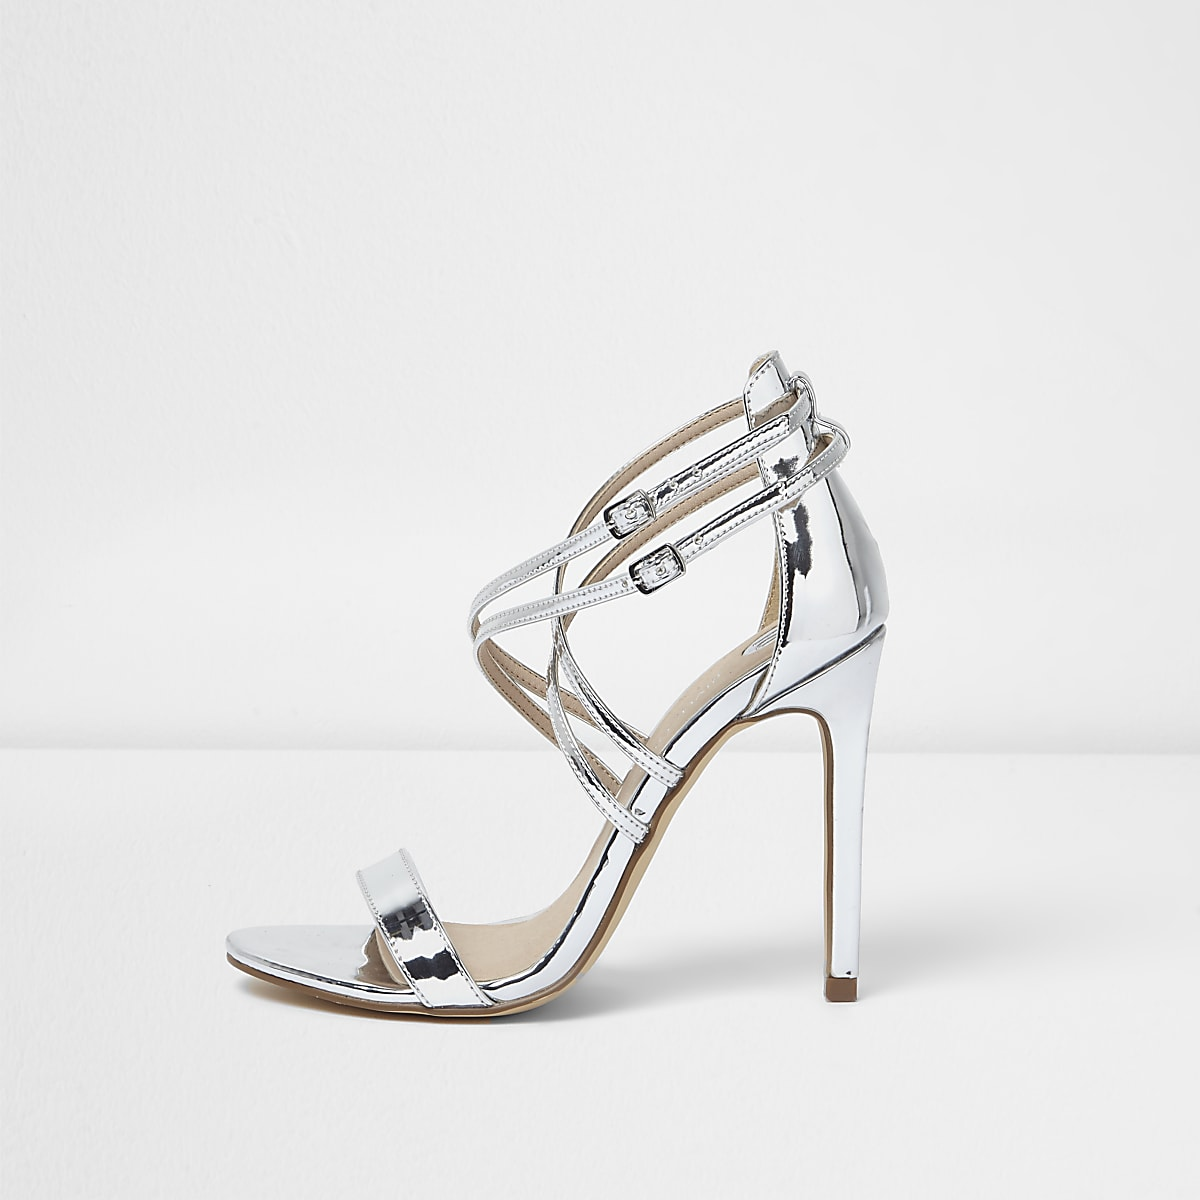 19c109362a204 Silver metallic barely there strappy heels